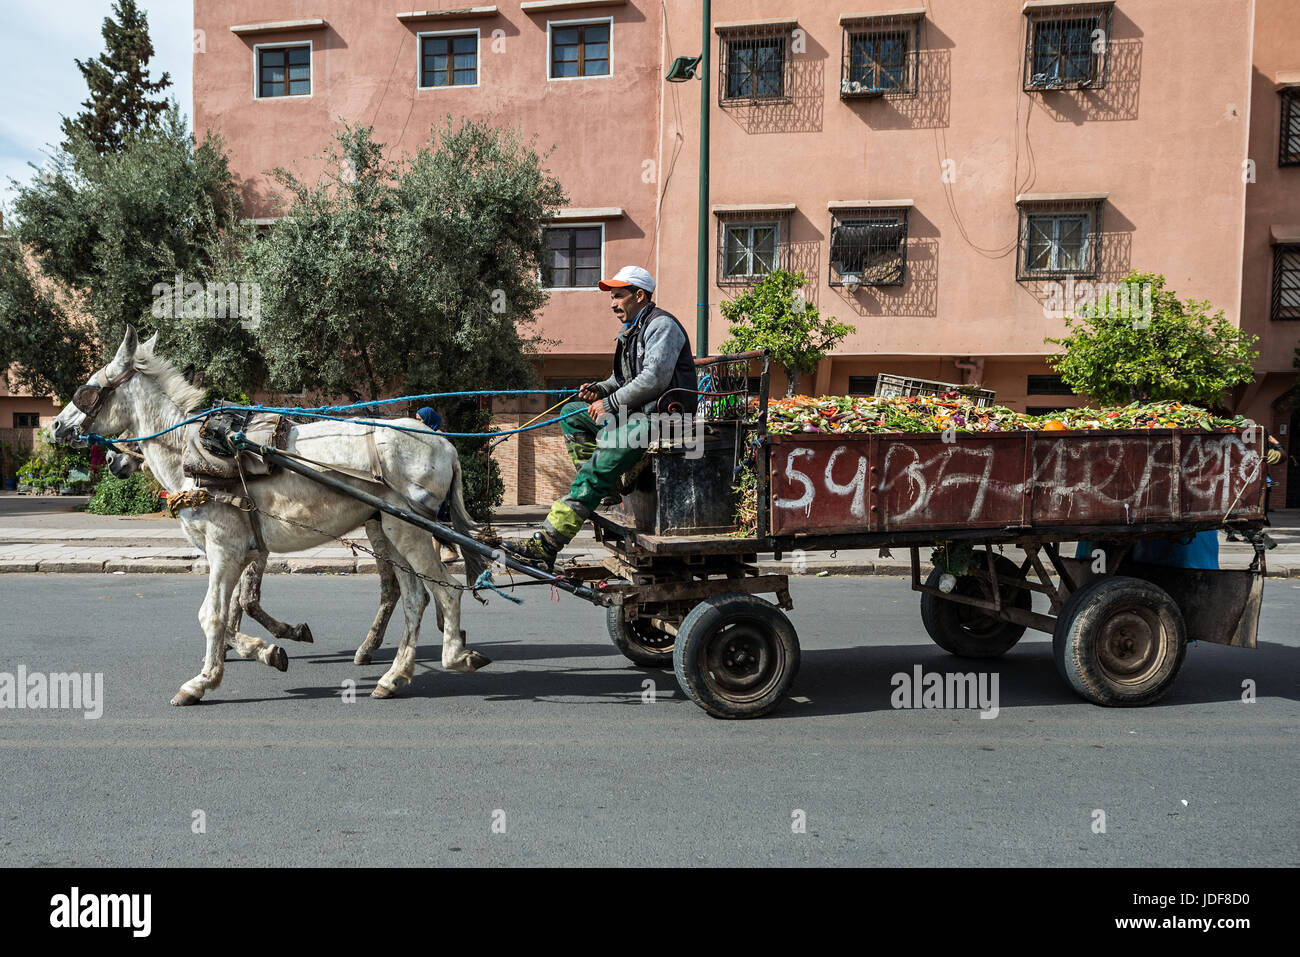 Trash cart pulled by two horses in Marrakech - Stock Image